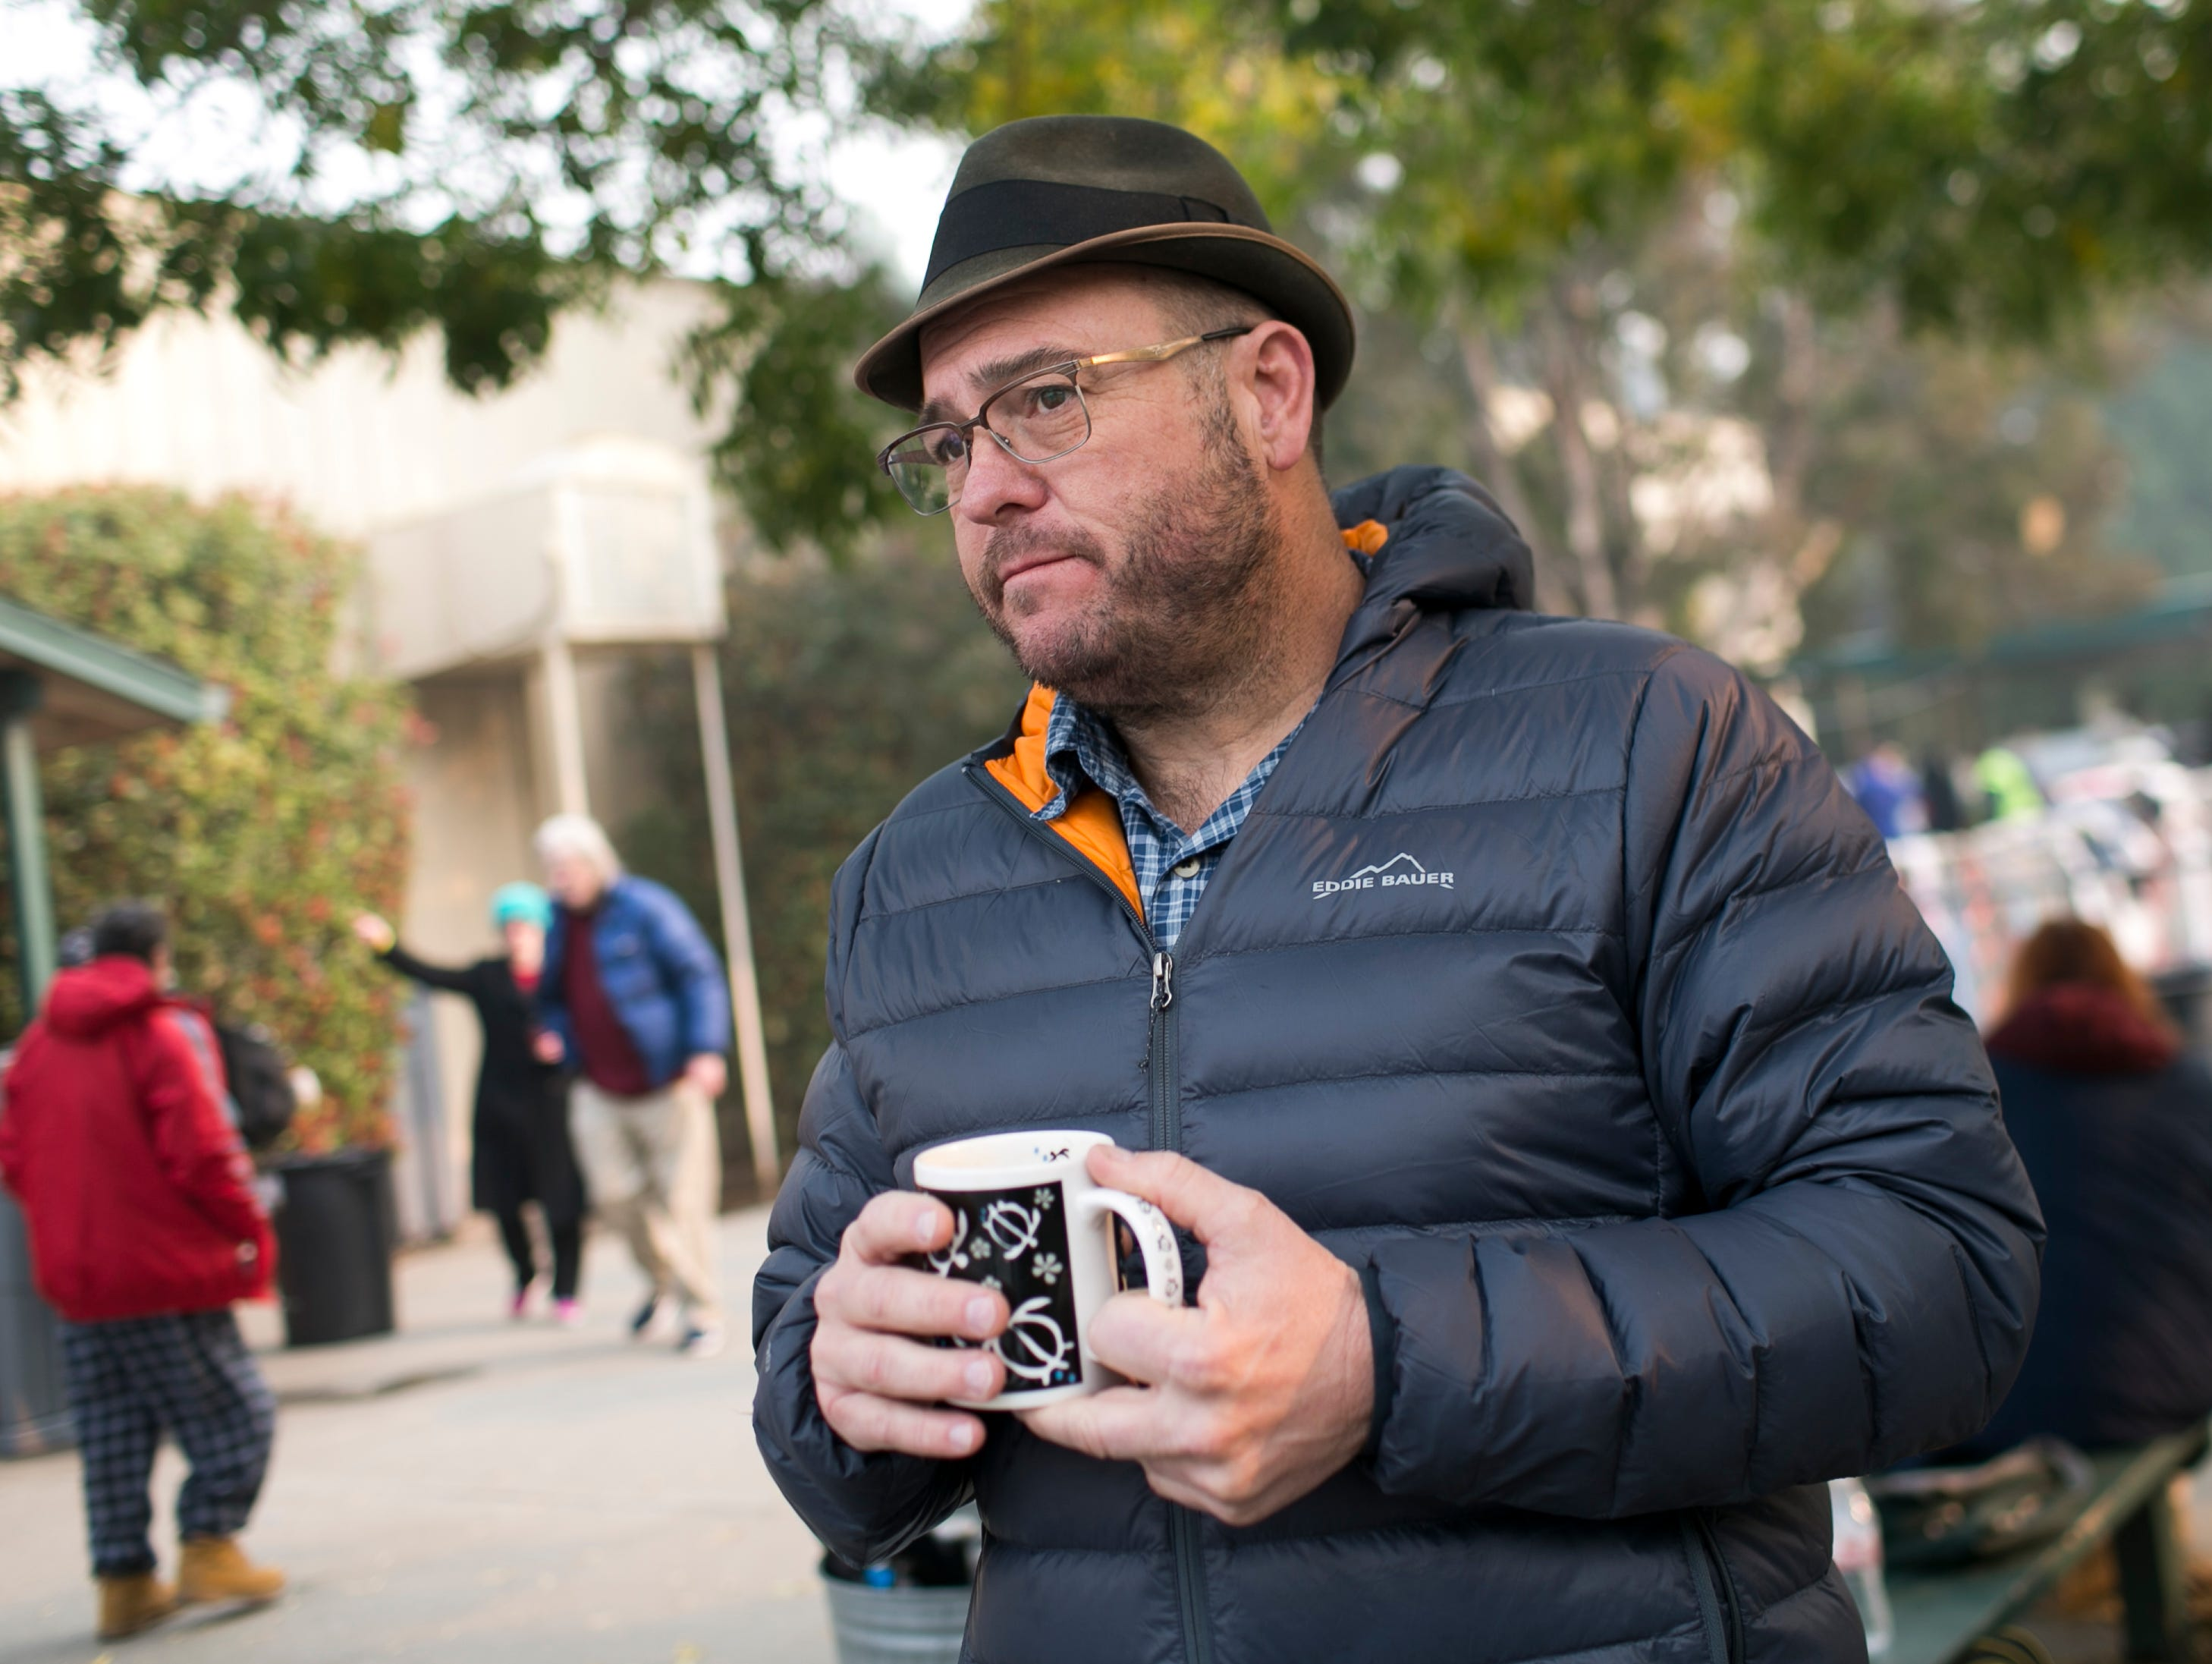 Pastor Ron Zimmer holds his morning coffee and stands outside the East Avenue Church Shelter in Chico, California on Nov. 17, 2018. Pastor Zimmer opened his church as a pop up shelter by the morning after the Camp Fire had burned through the town of Paradise, killing at least 80 and displacing thousands.